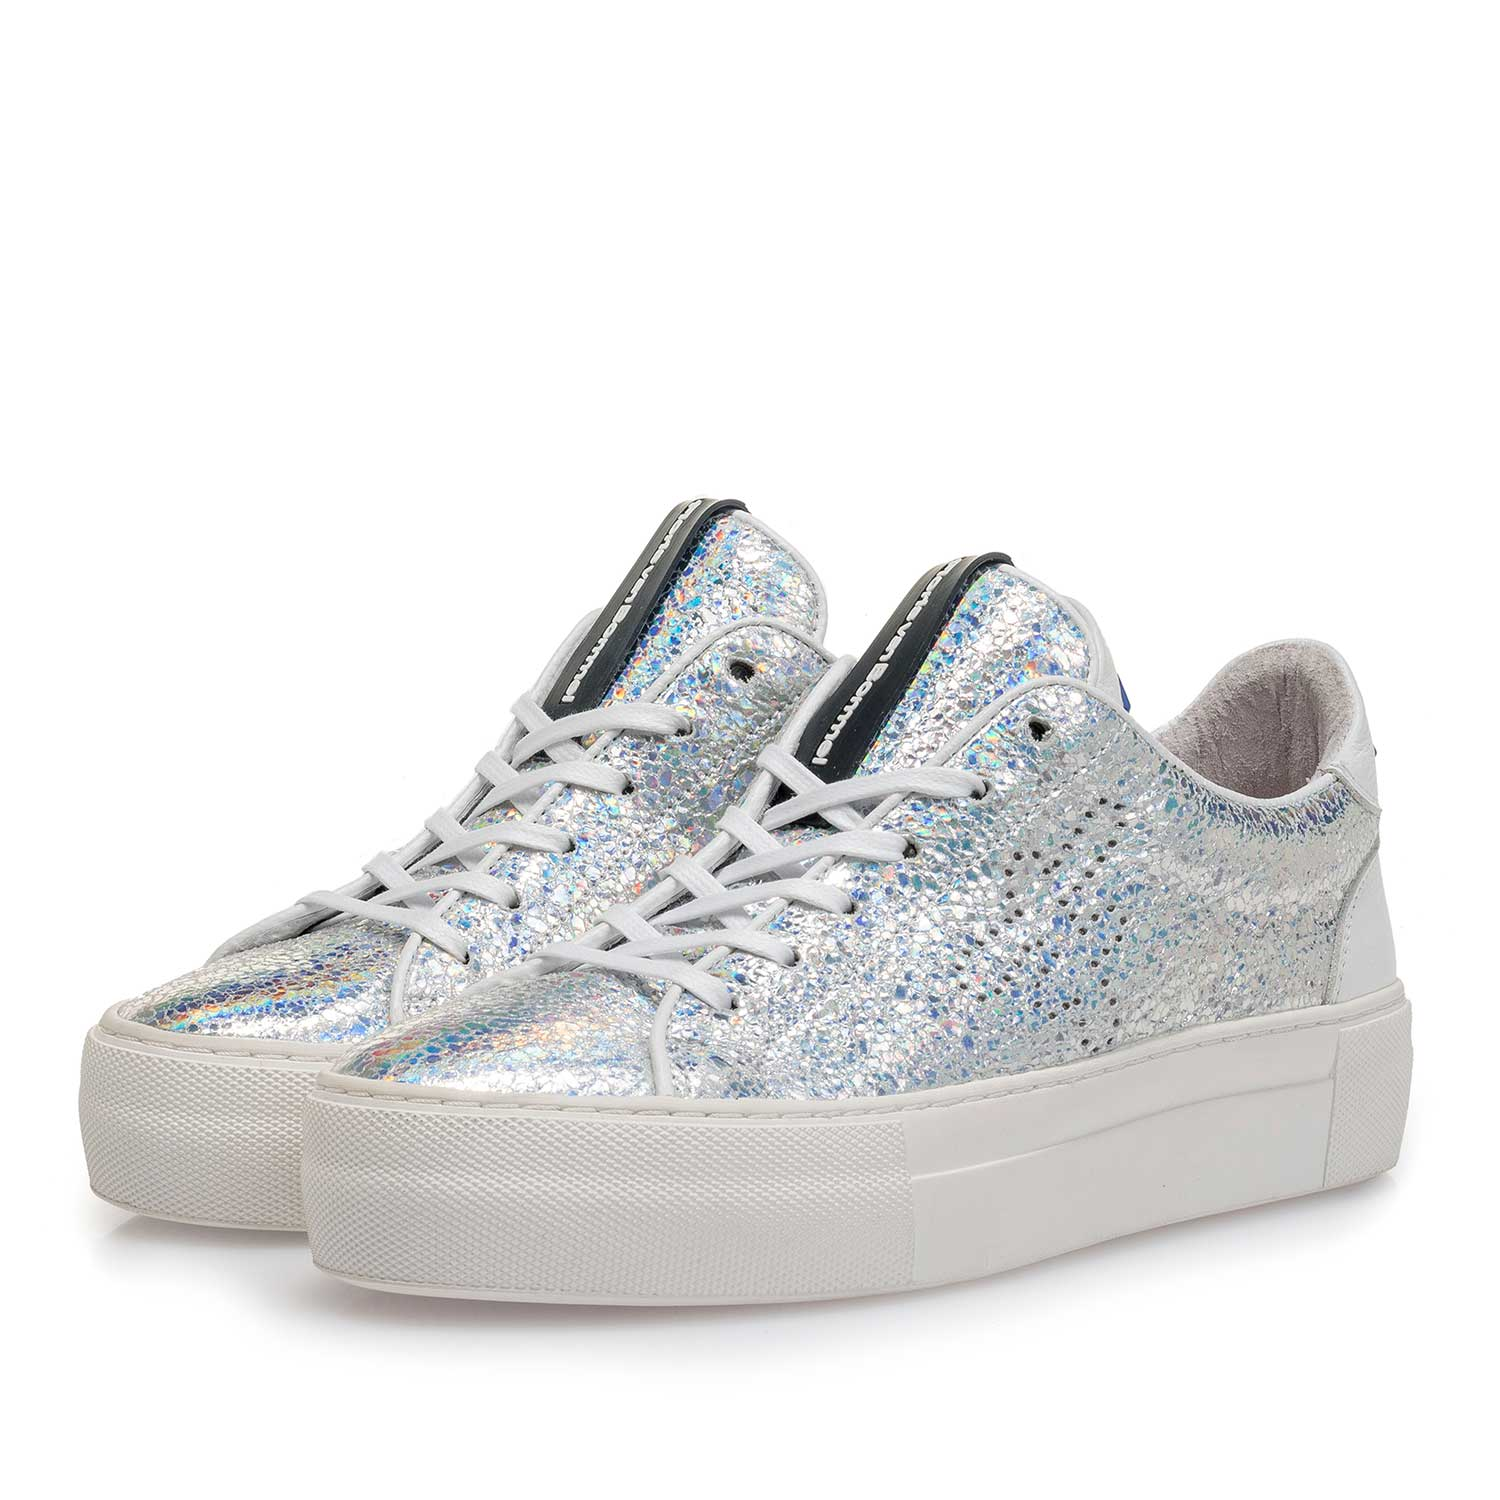 85266/00 - Silver metallic leather sneaker with craquelé effect